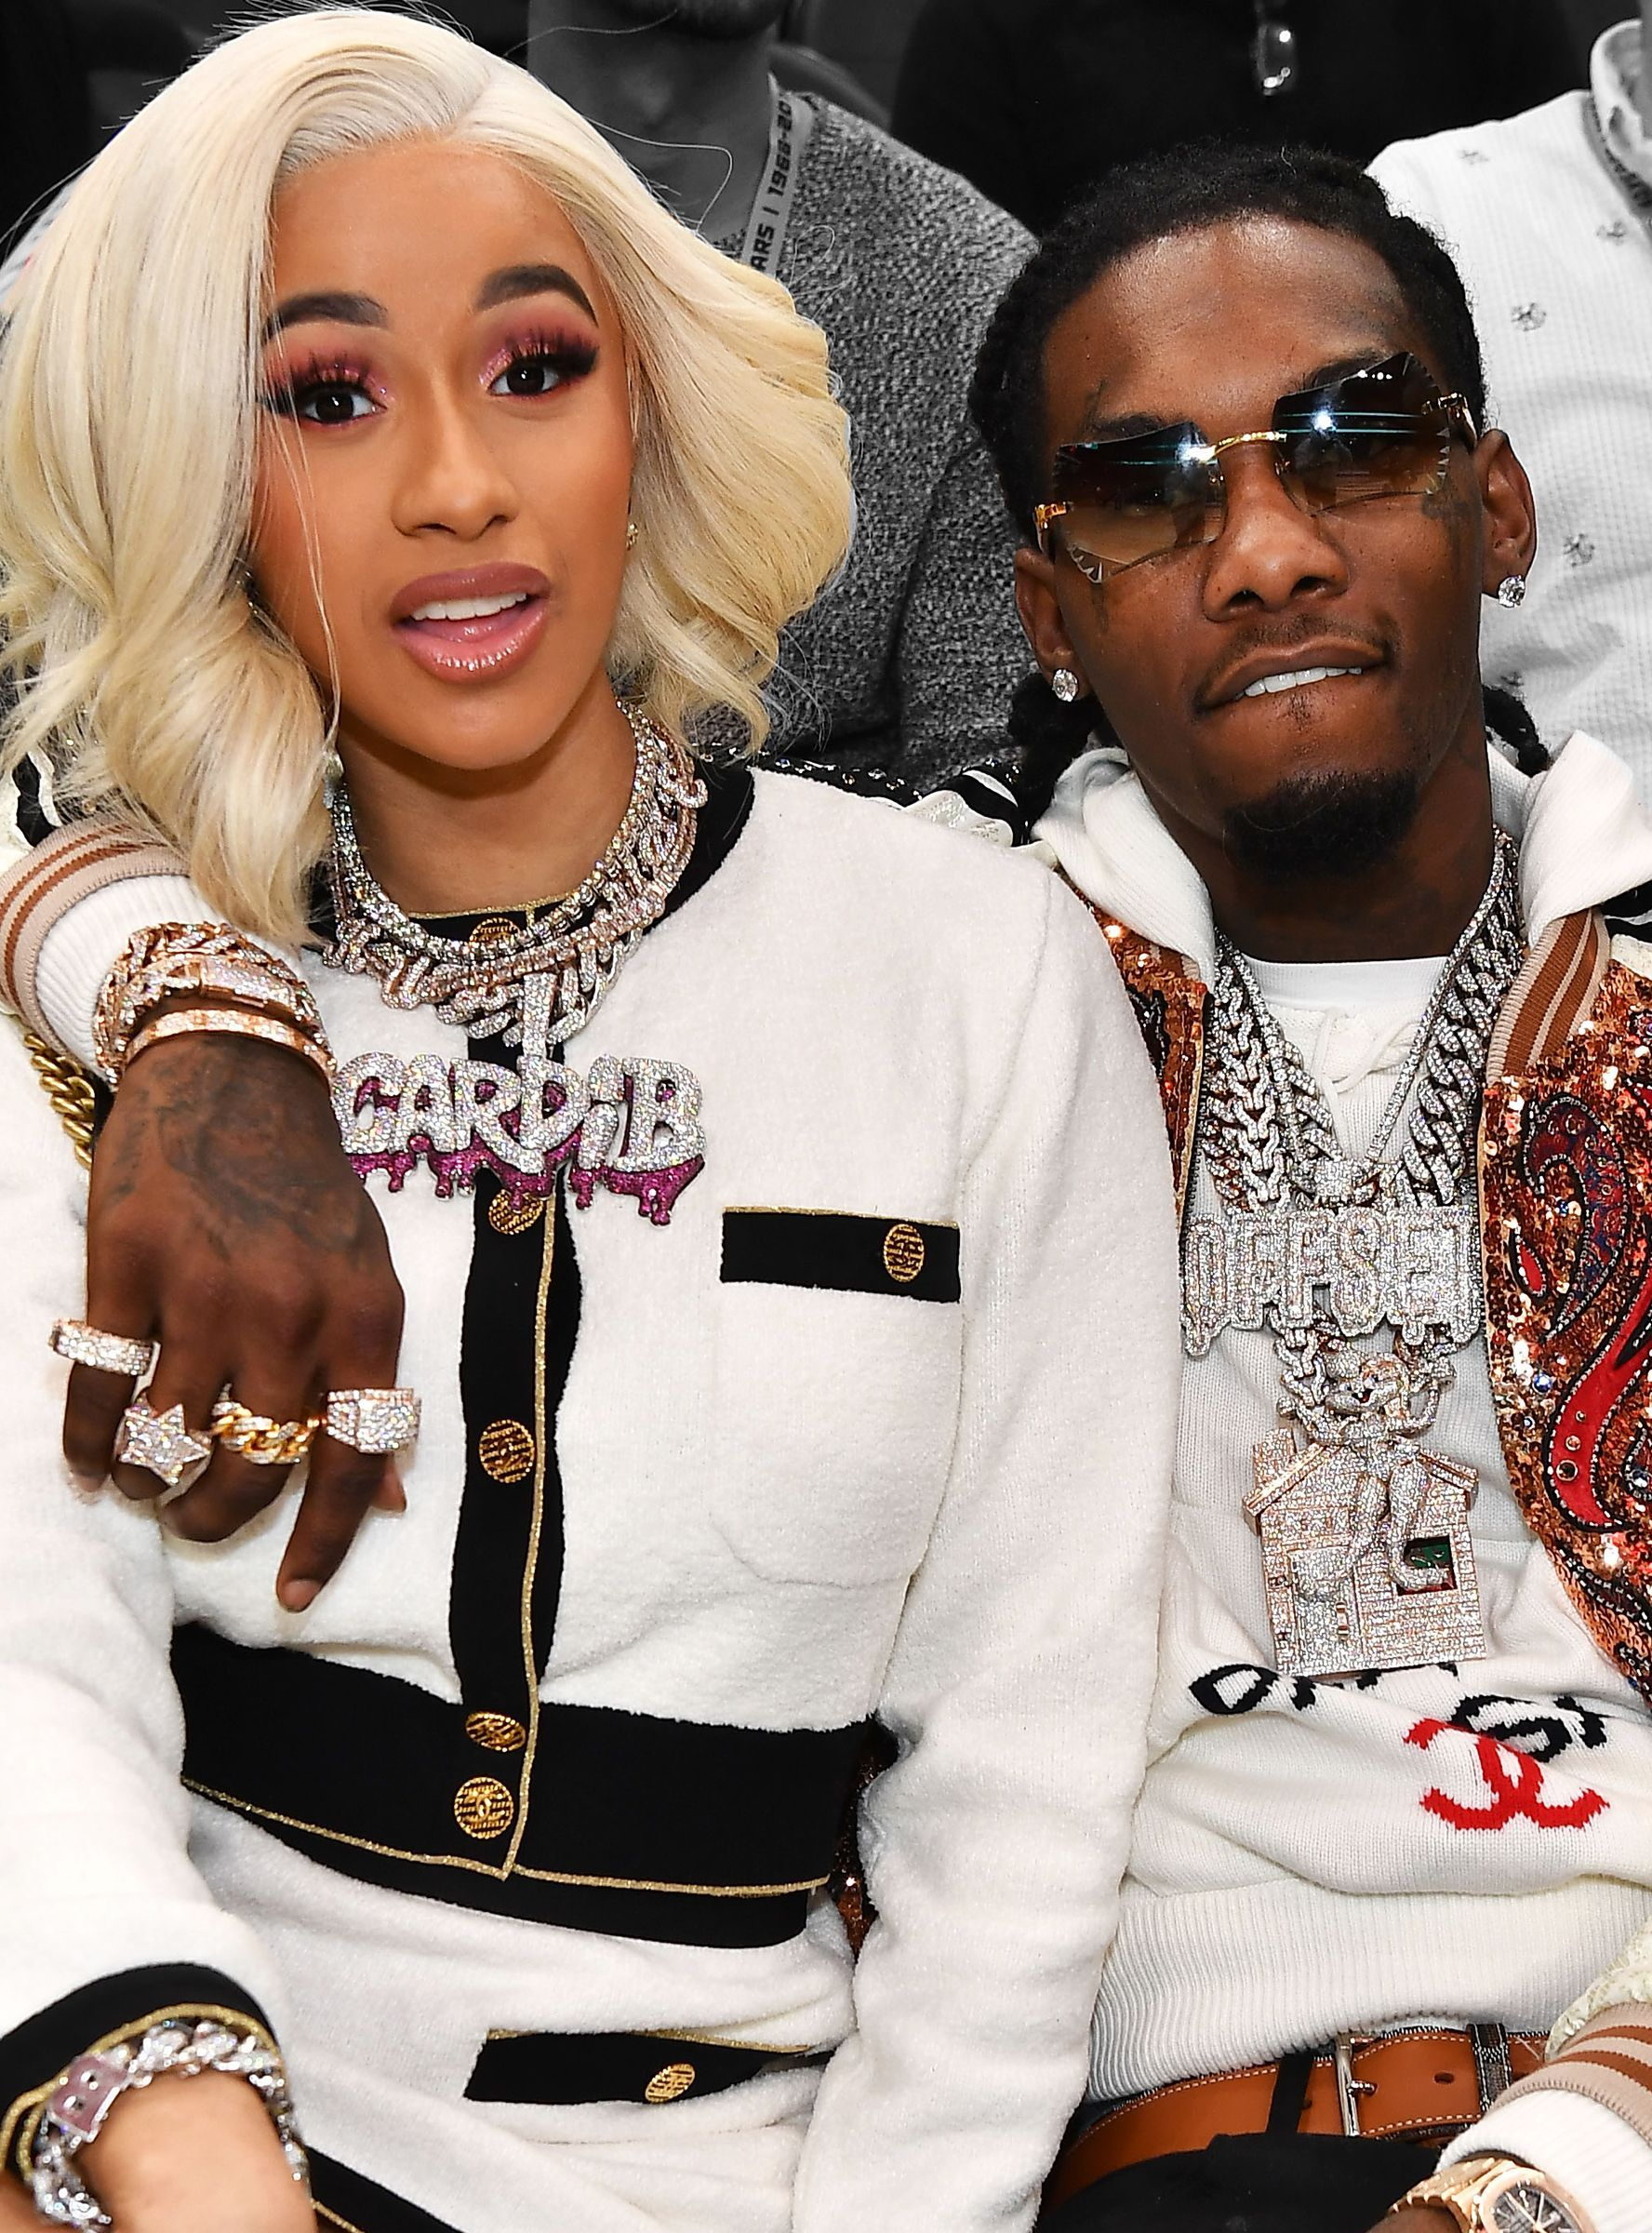 The Cardi B. & Offset Incident May Have Been Staged In